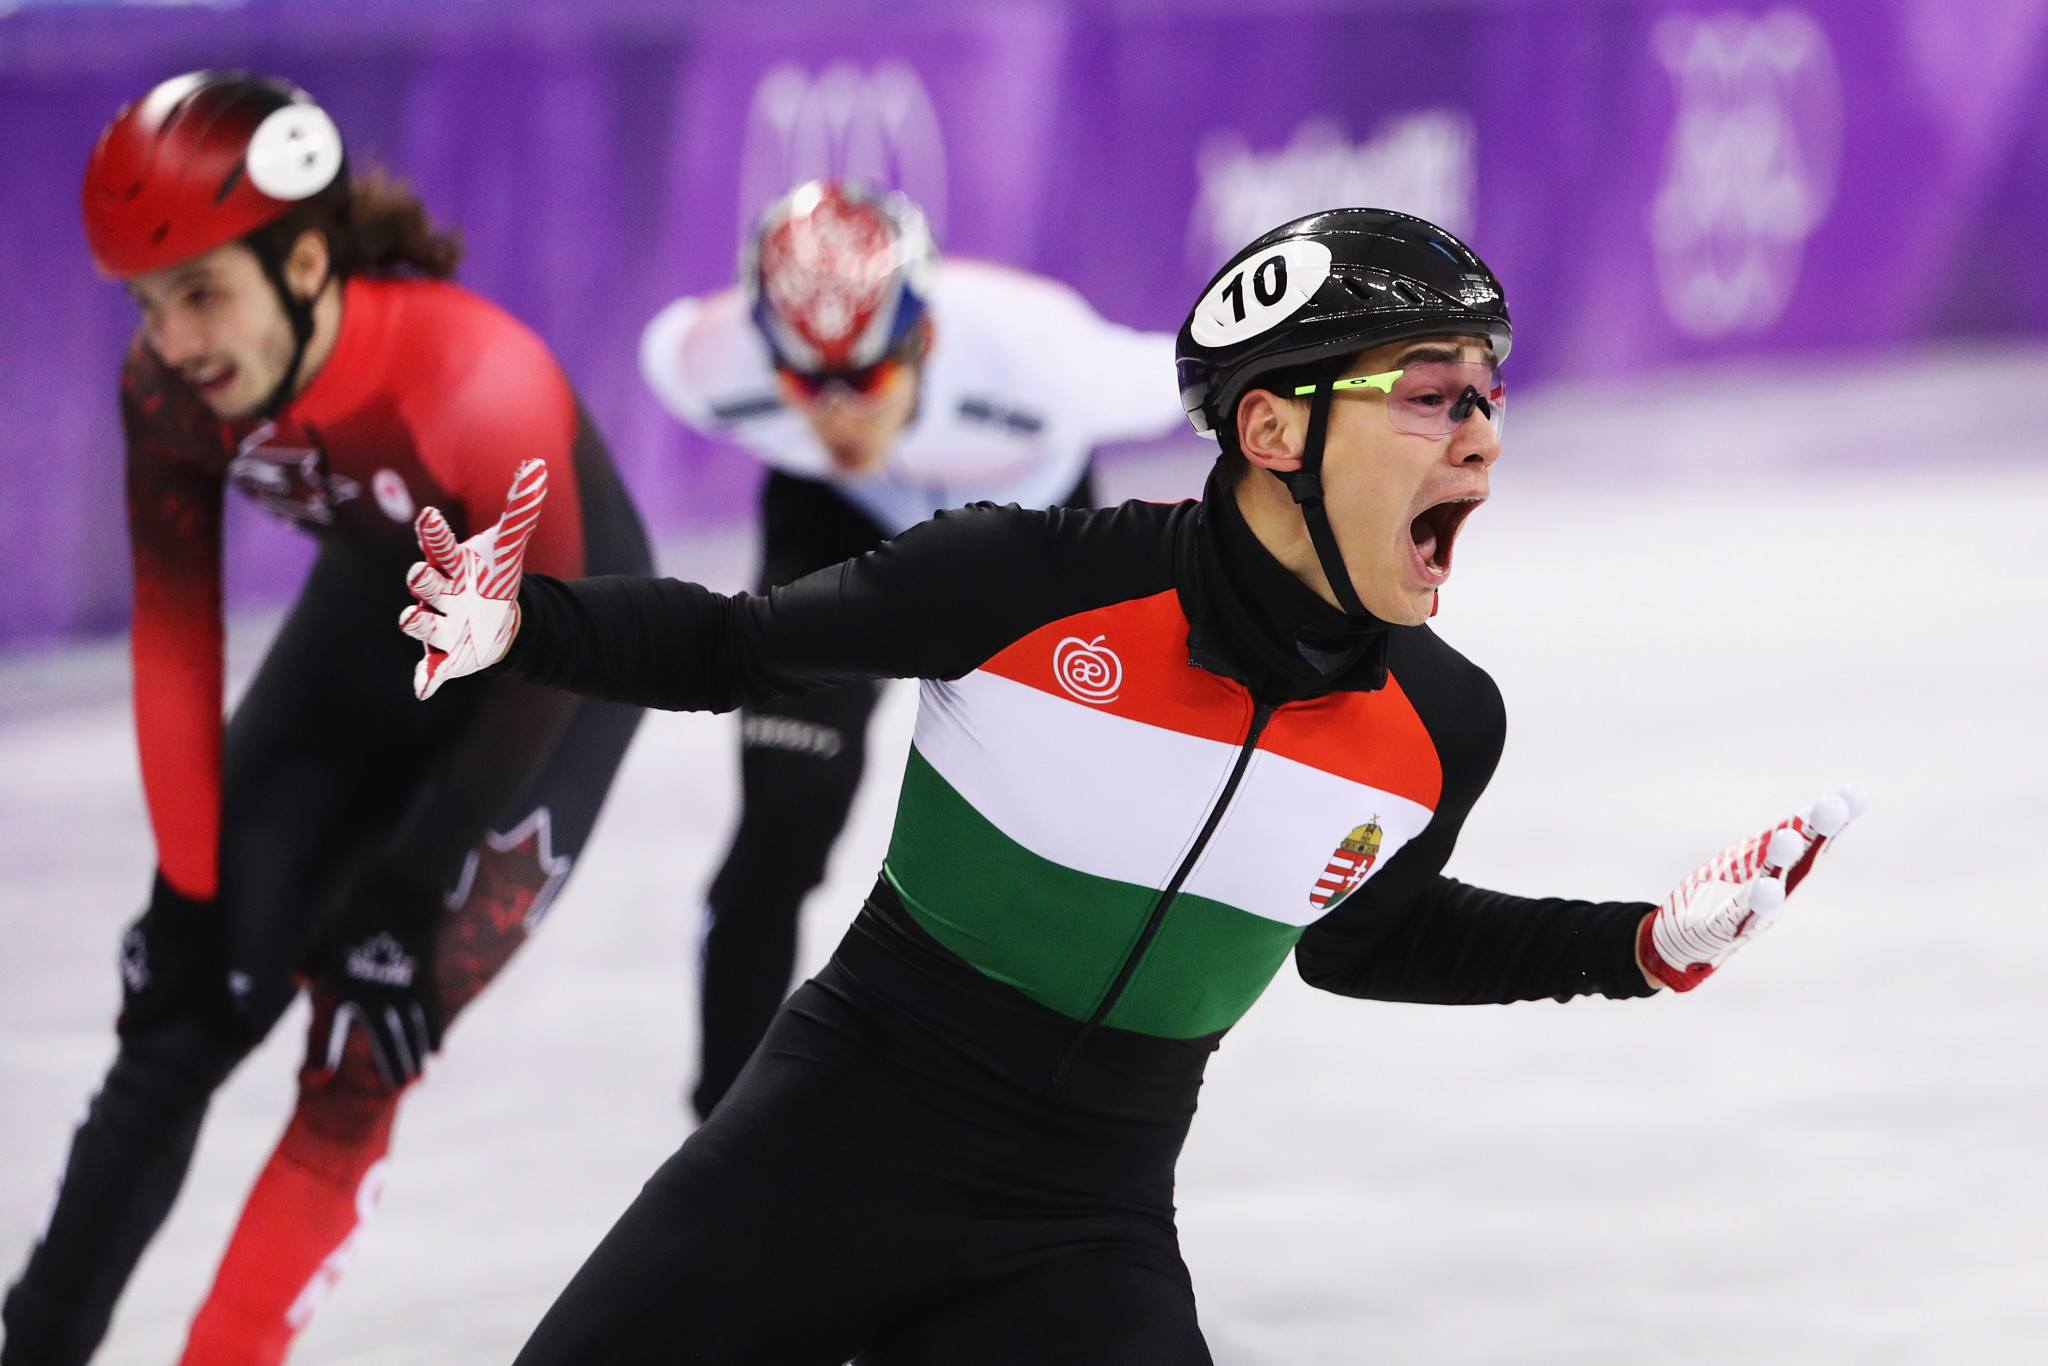 Shaoang Liu, Shaolin Sandor Liu, Viktor Knoch and Csaba Burján claimed Hungary's first Winter Olympic Games short track gold medal ©Getty Images